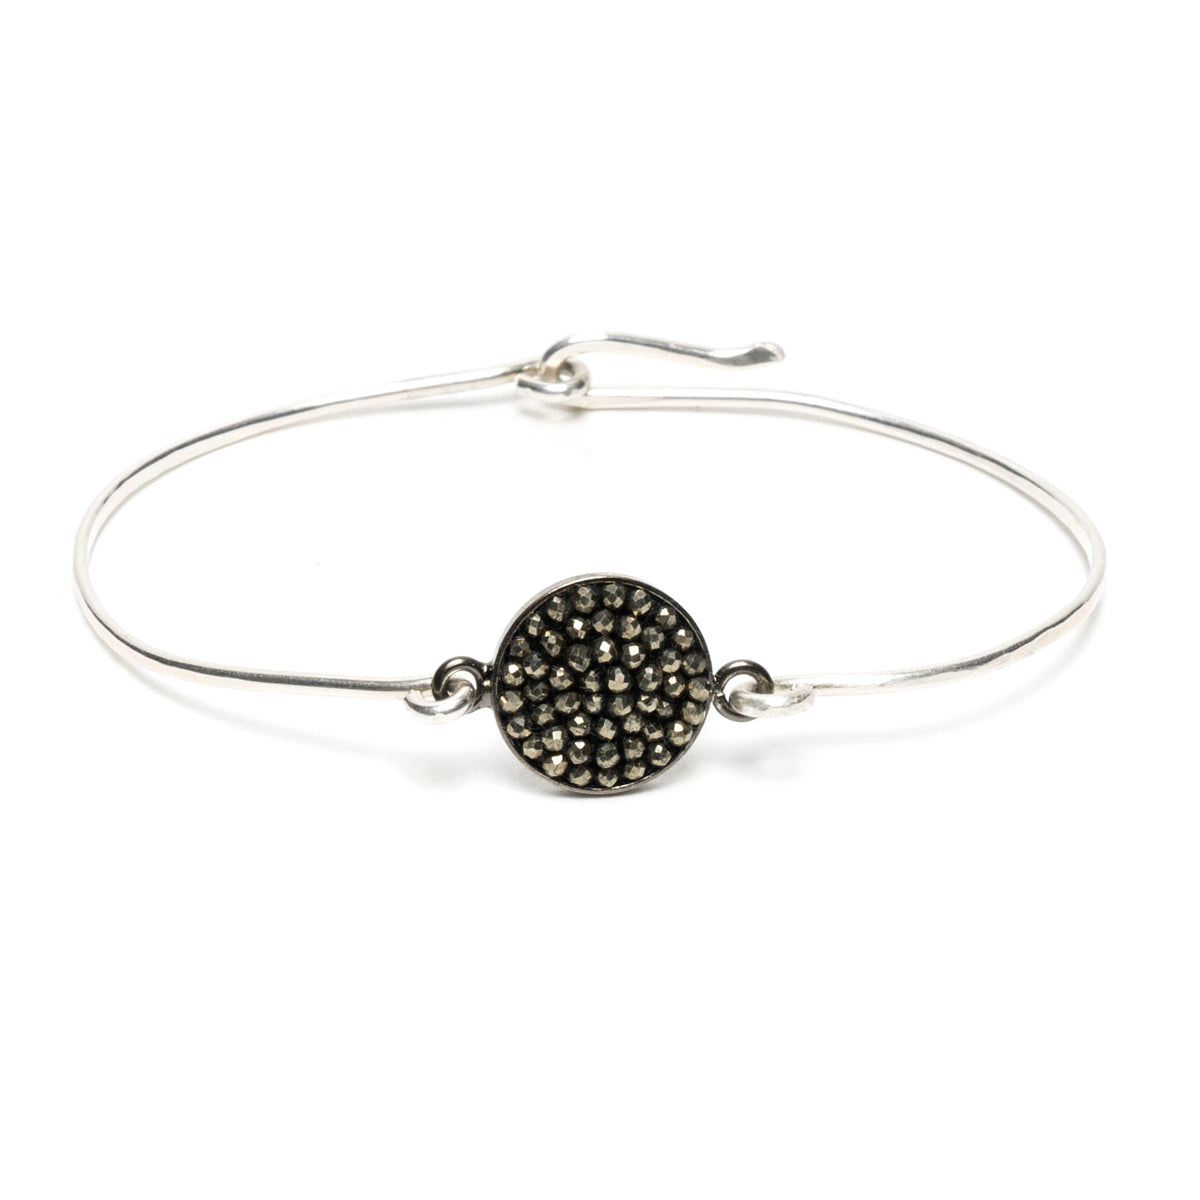 Pyrite Iconic Mosaic Bangle Bracelet